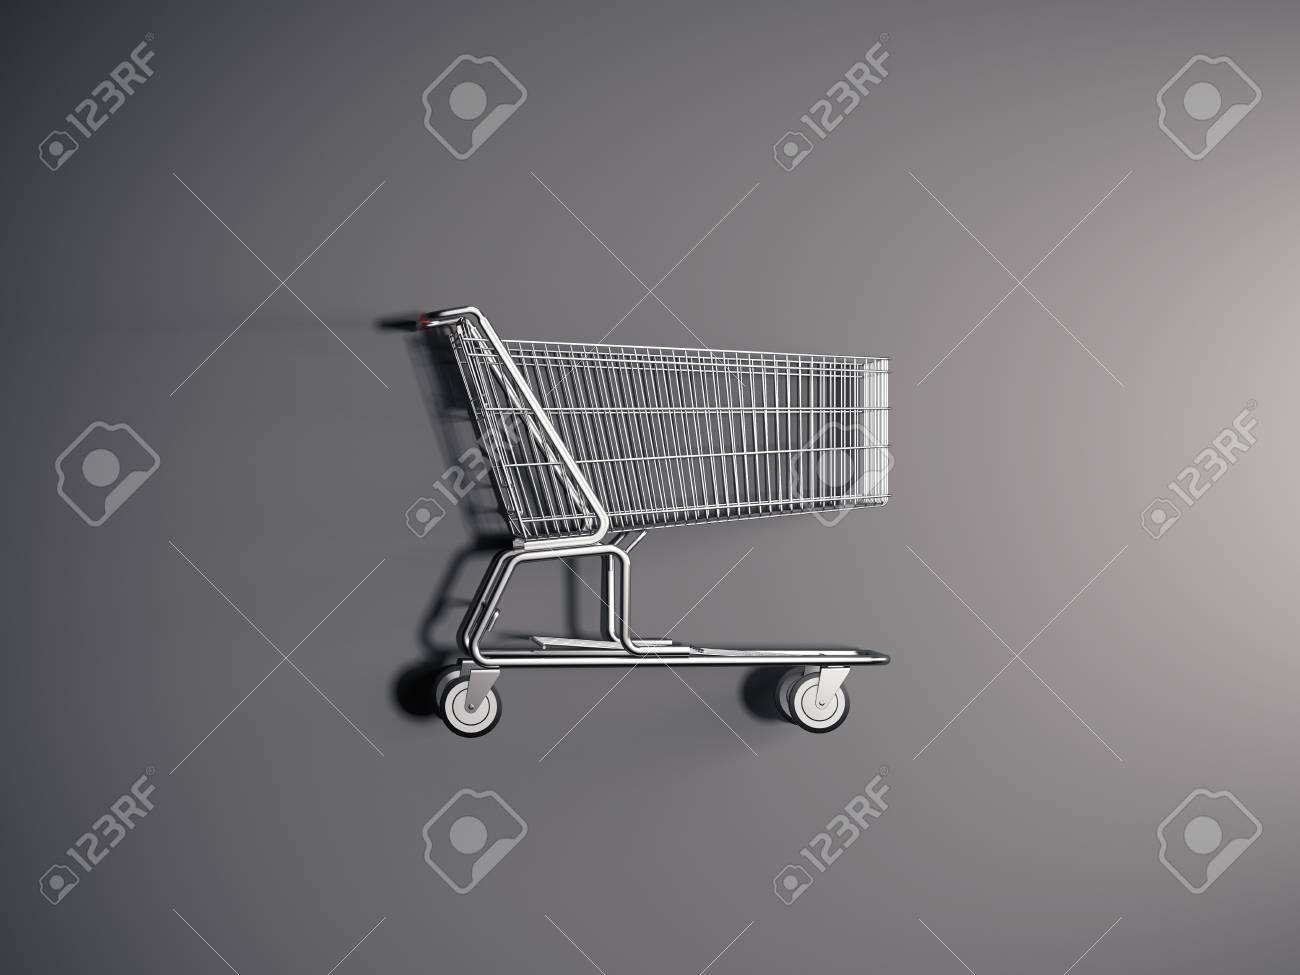 Realistic shopping cart on grey background, 3d rendering. - 106926016